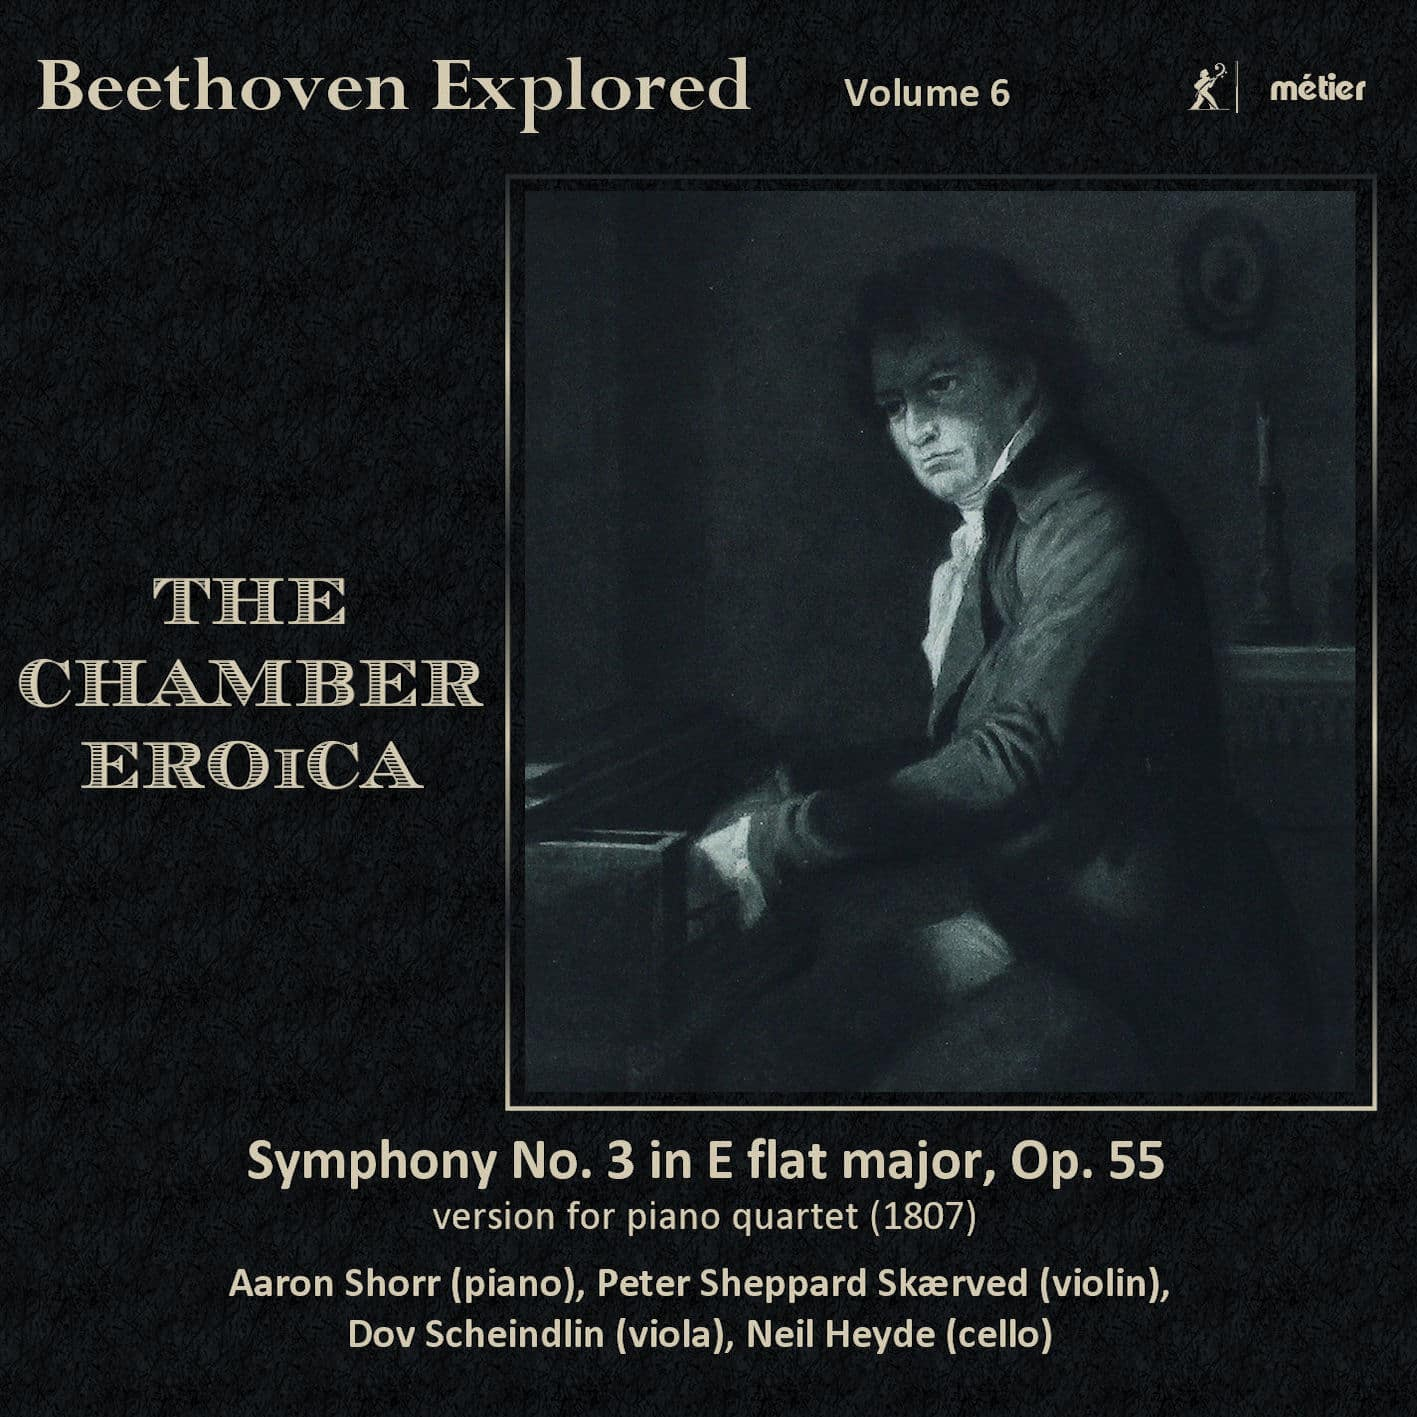 Beethoven Explored, volume 6 - The Chamber Eroica